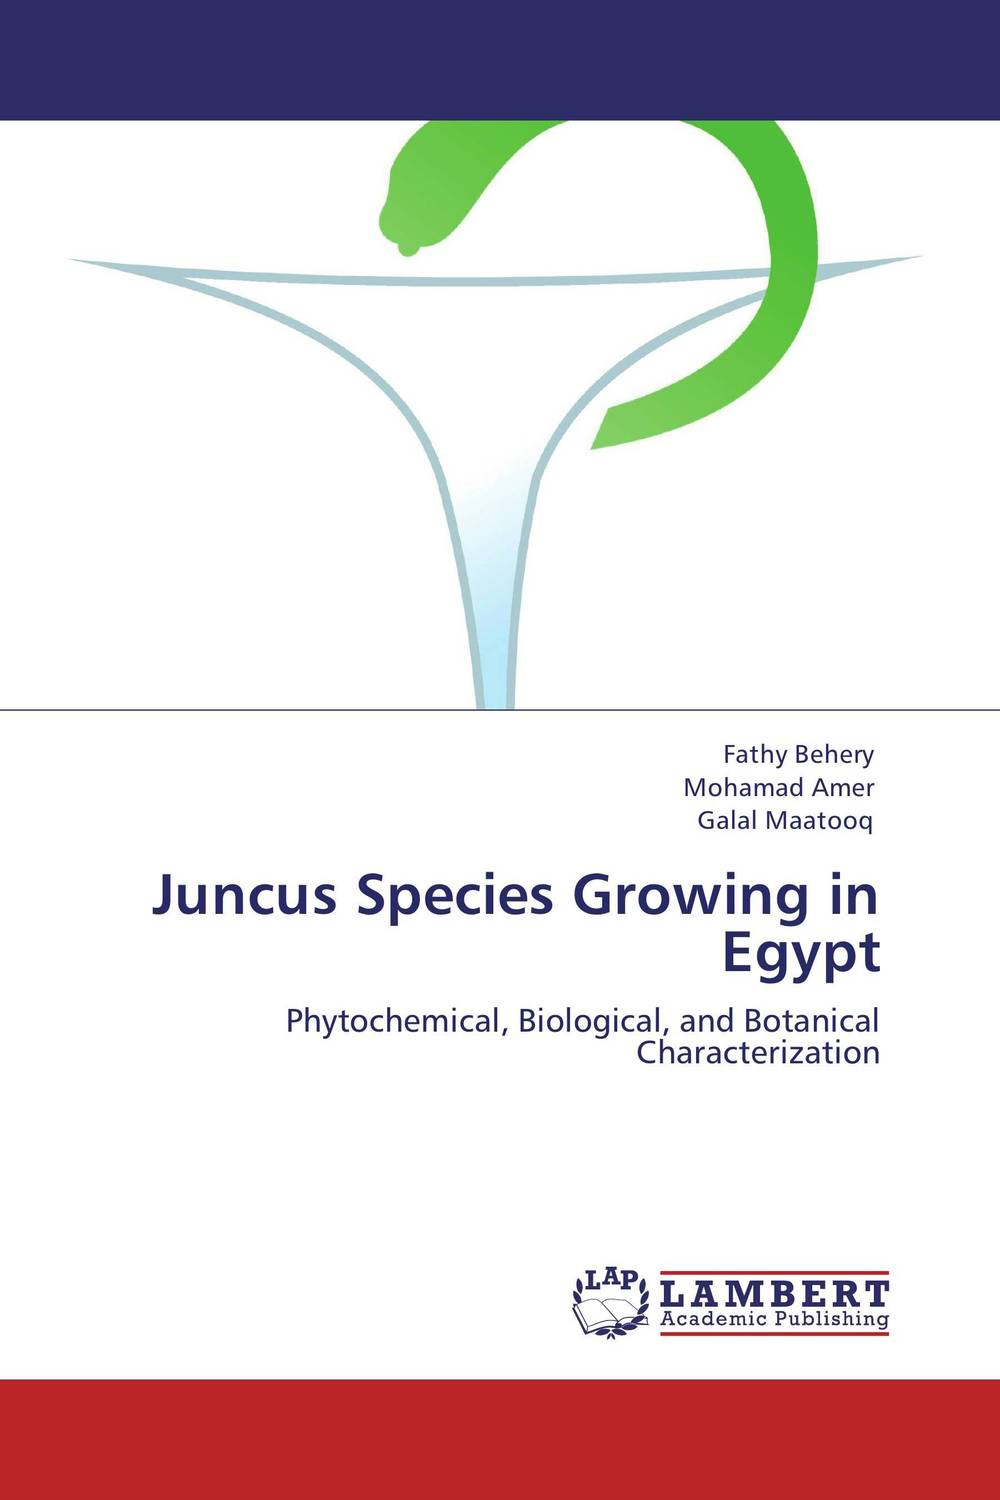 Juncus Species Growing in Egypt toby bishop j corporate resiliency managing the growing risk of fraud and corruption